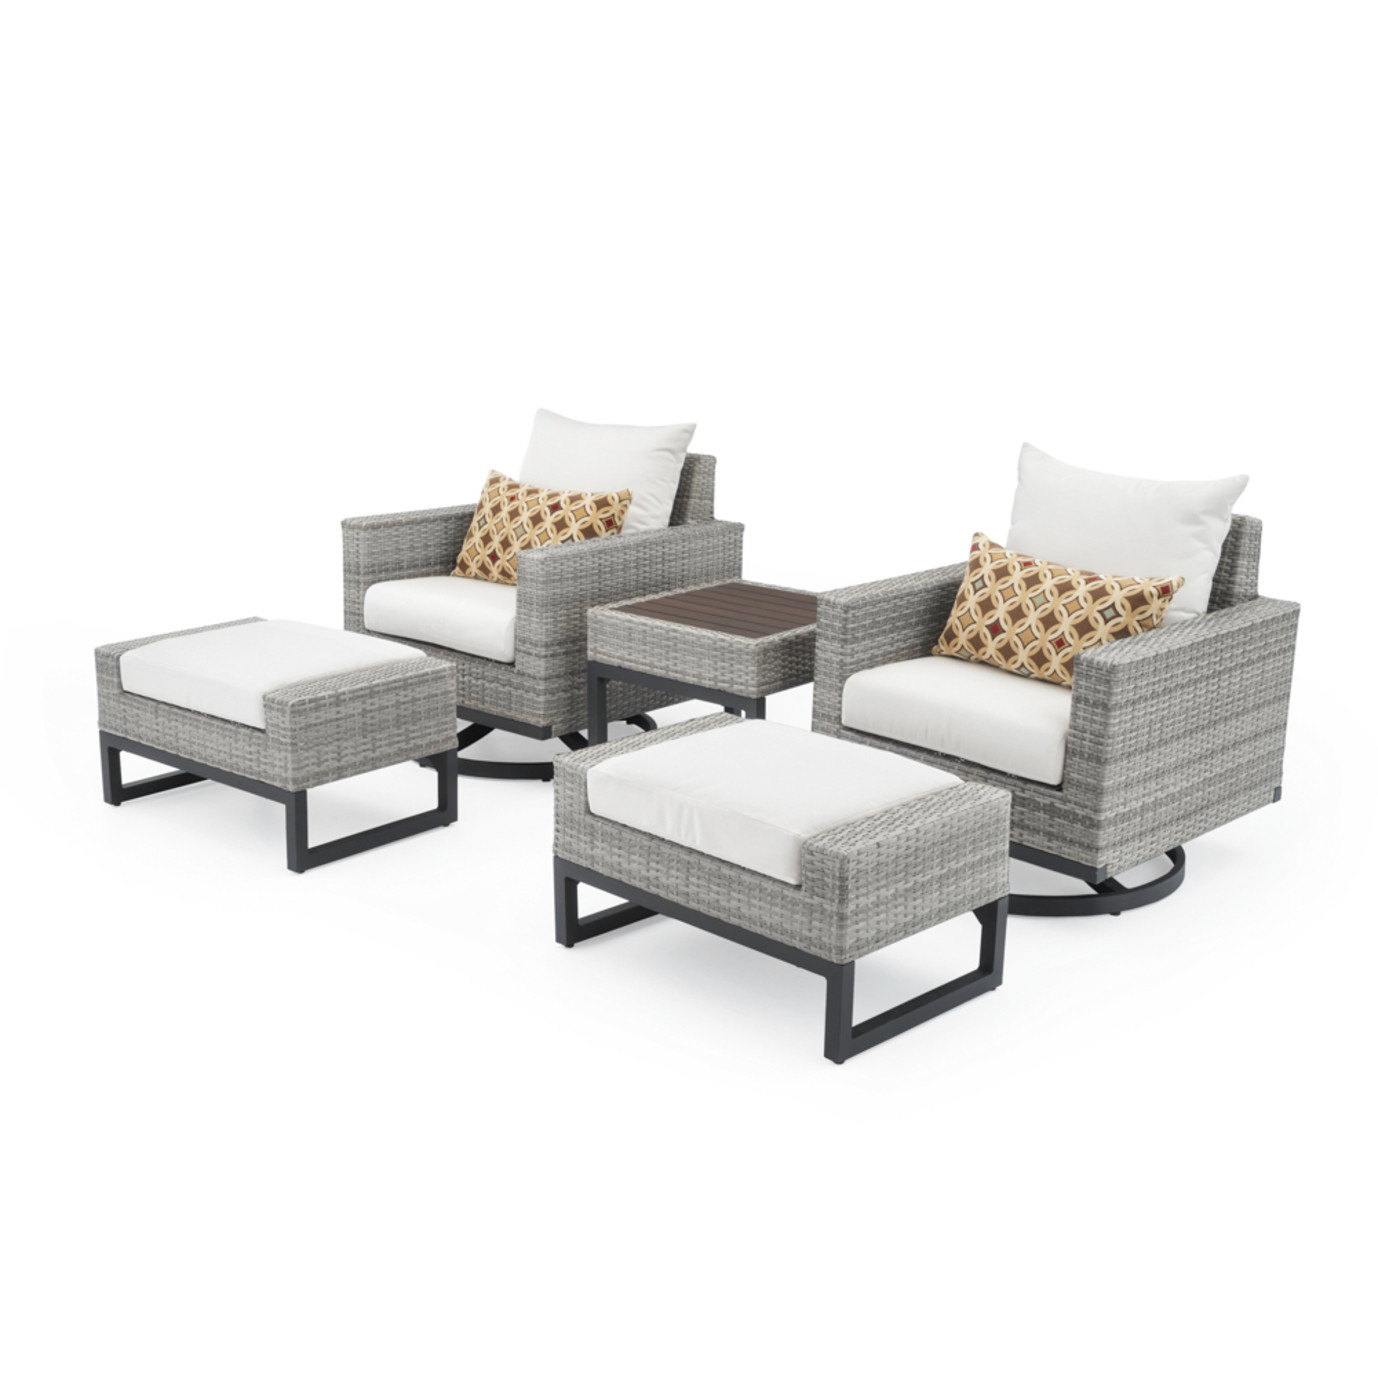 Milo™ Gray 5pc Motion Club Set - Moroccan Cream